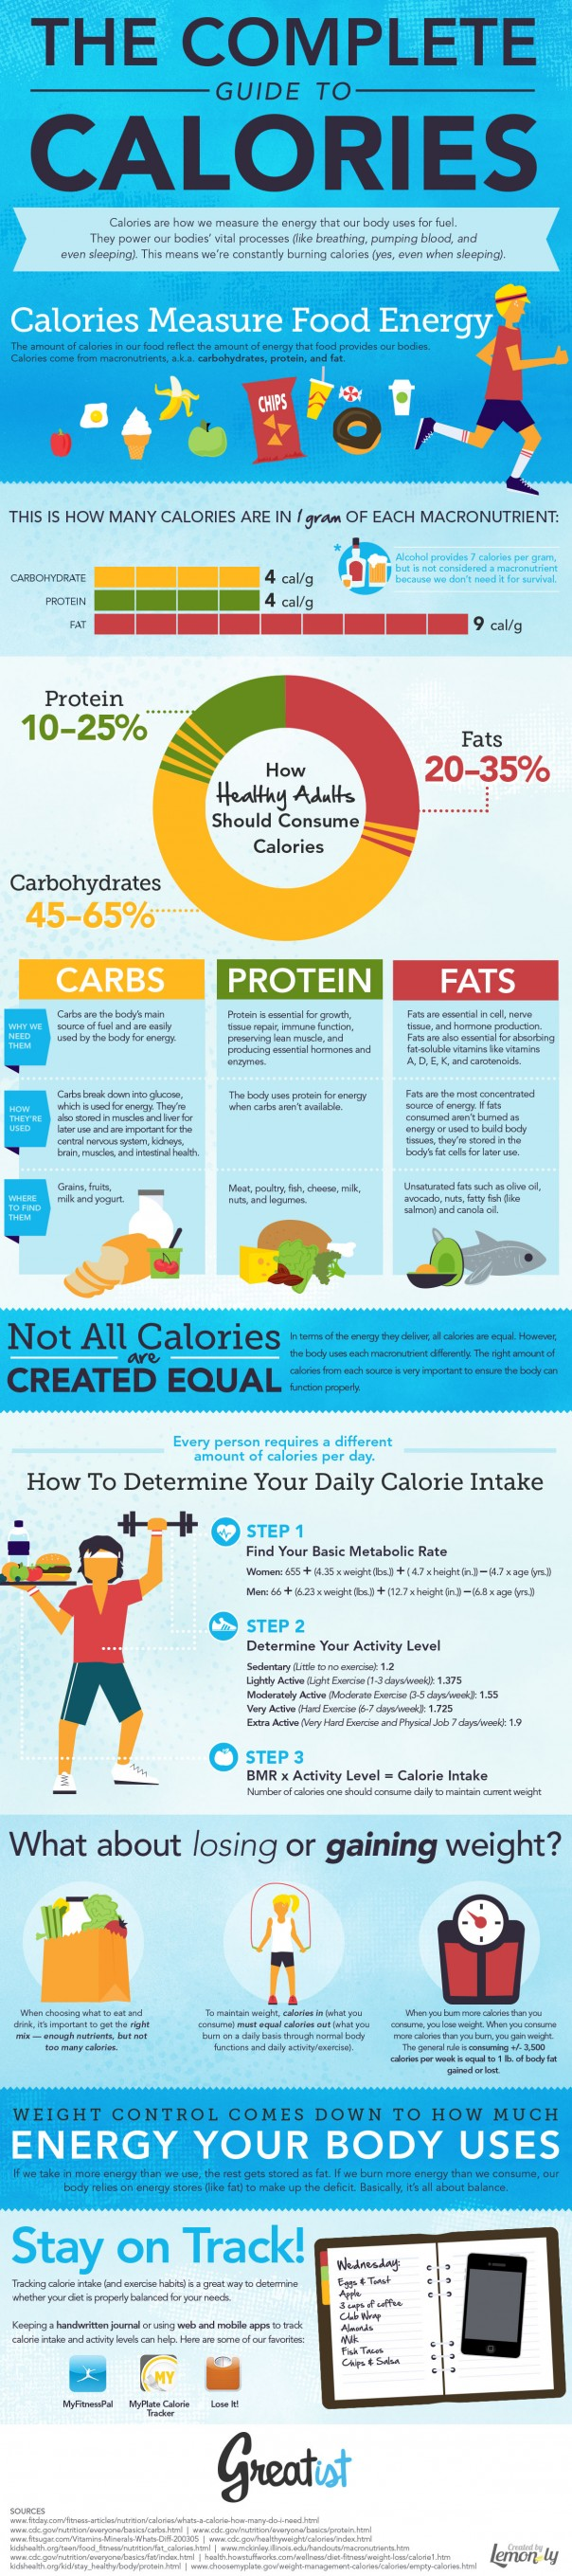 the-complete-guide-to-calories_50637dda2ab3e